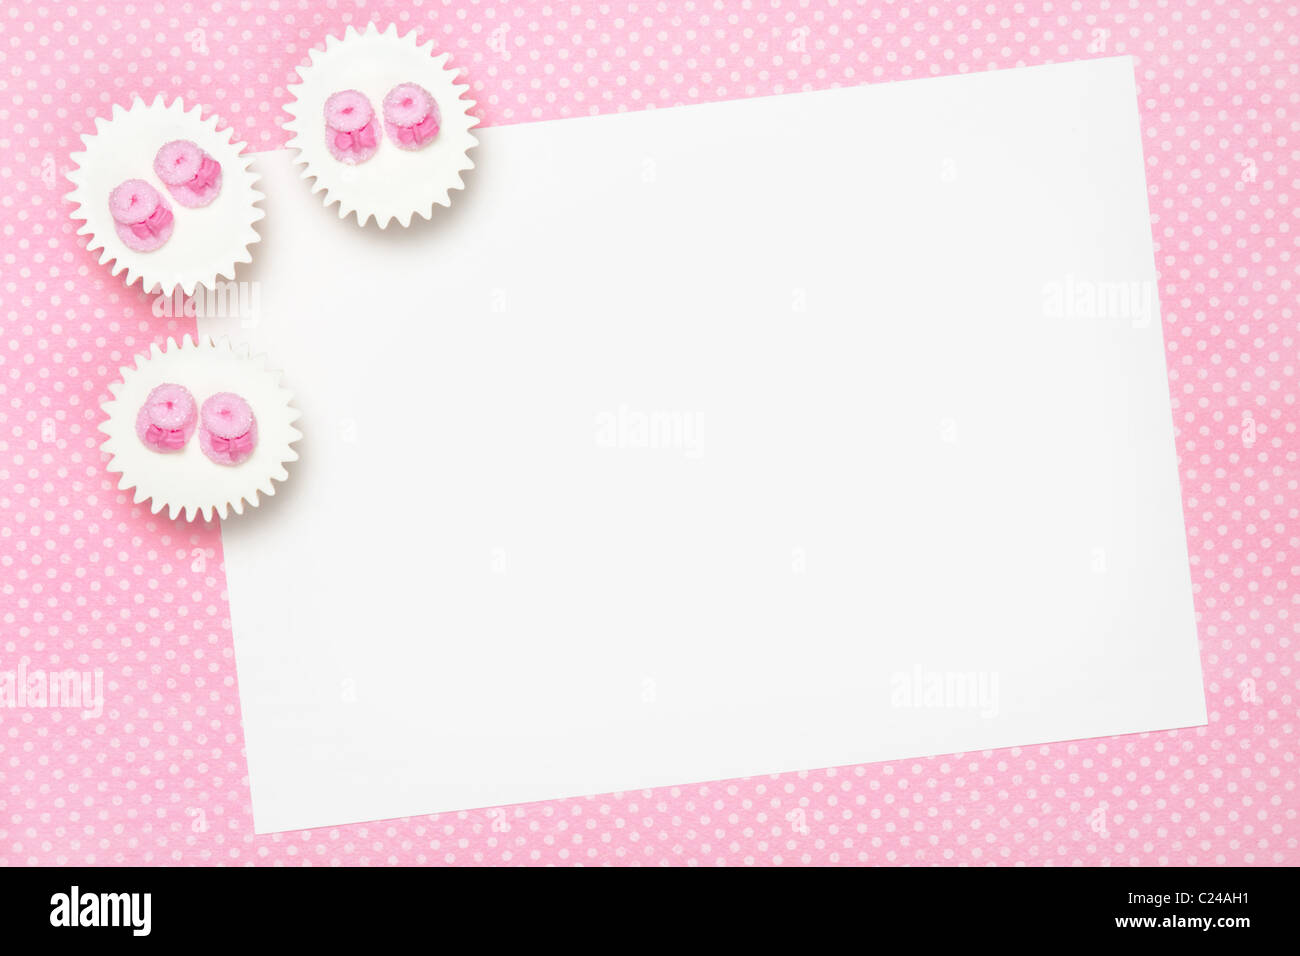 Blank baby shower invite Stock Photo Royalty Free Image 35746173